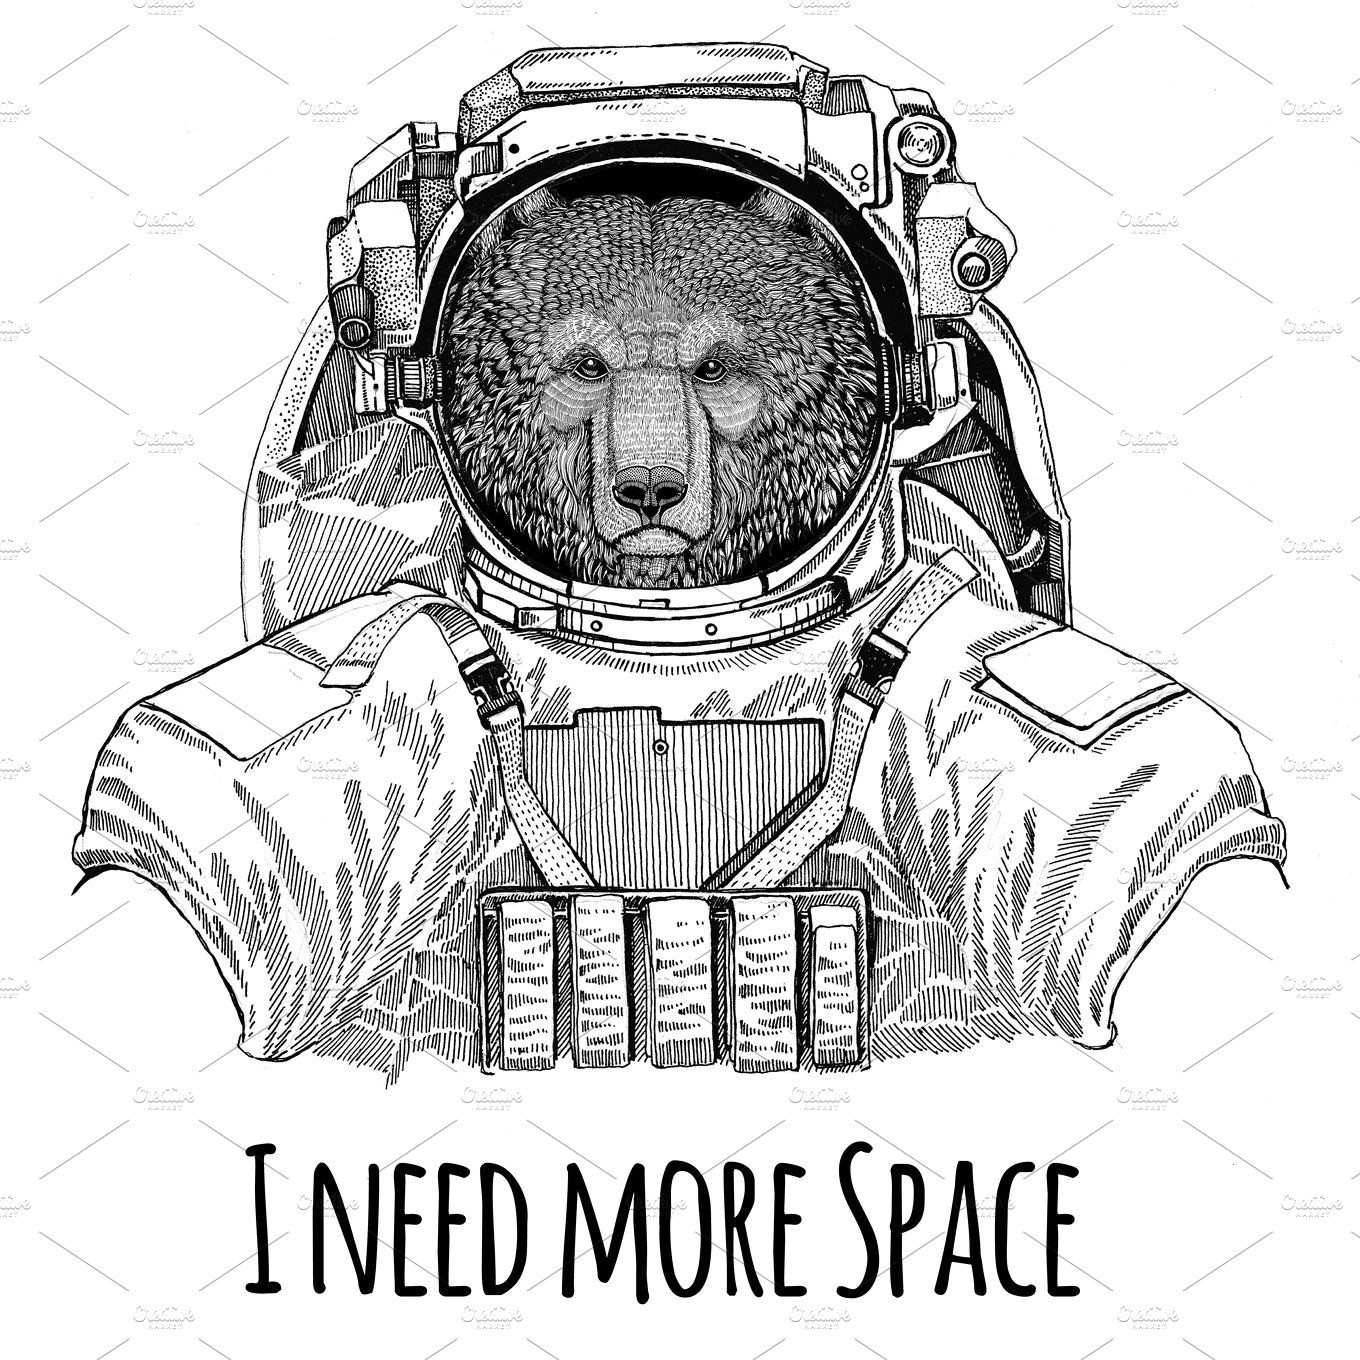 brown bear russian bear wearing space suit wild animal astronaut spaceman galaxy exploration hand drawn illustration